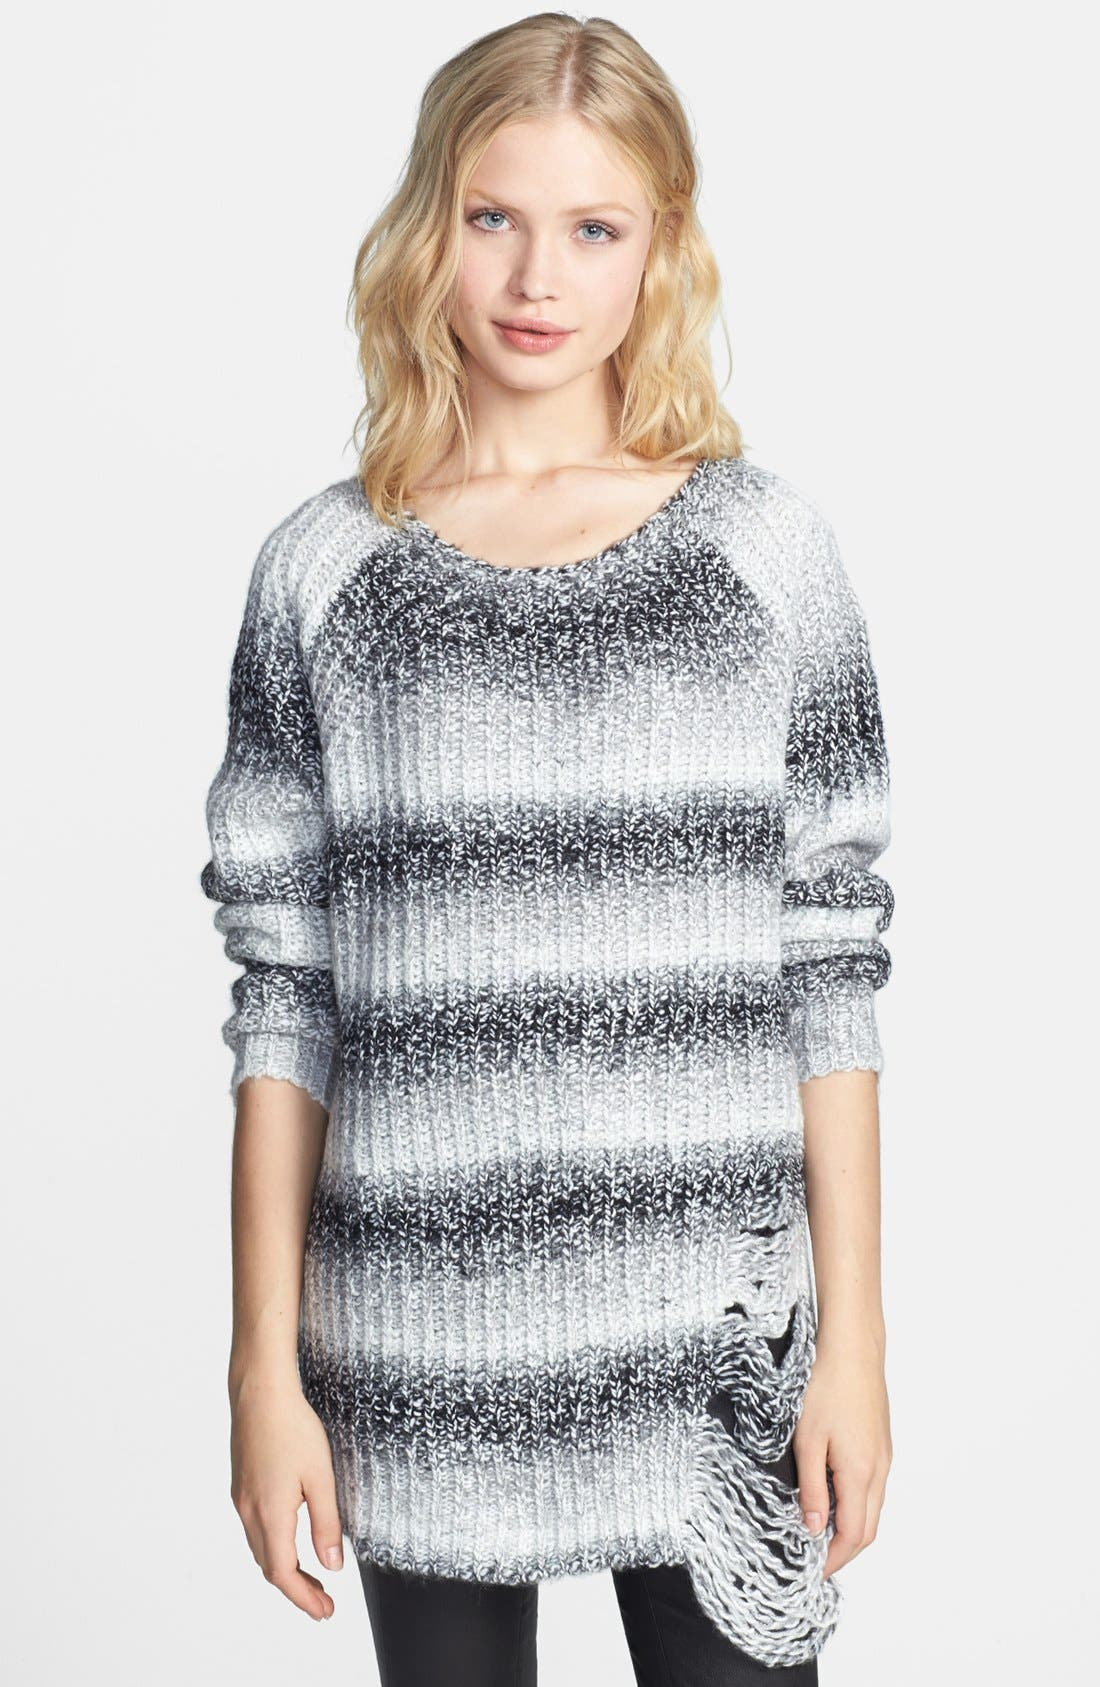 Alternate Image 1 Selected - ELEVENPARIS 'Tinter' Destroyed Marled Sweater